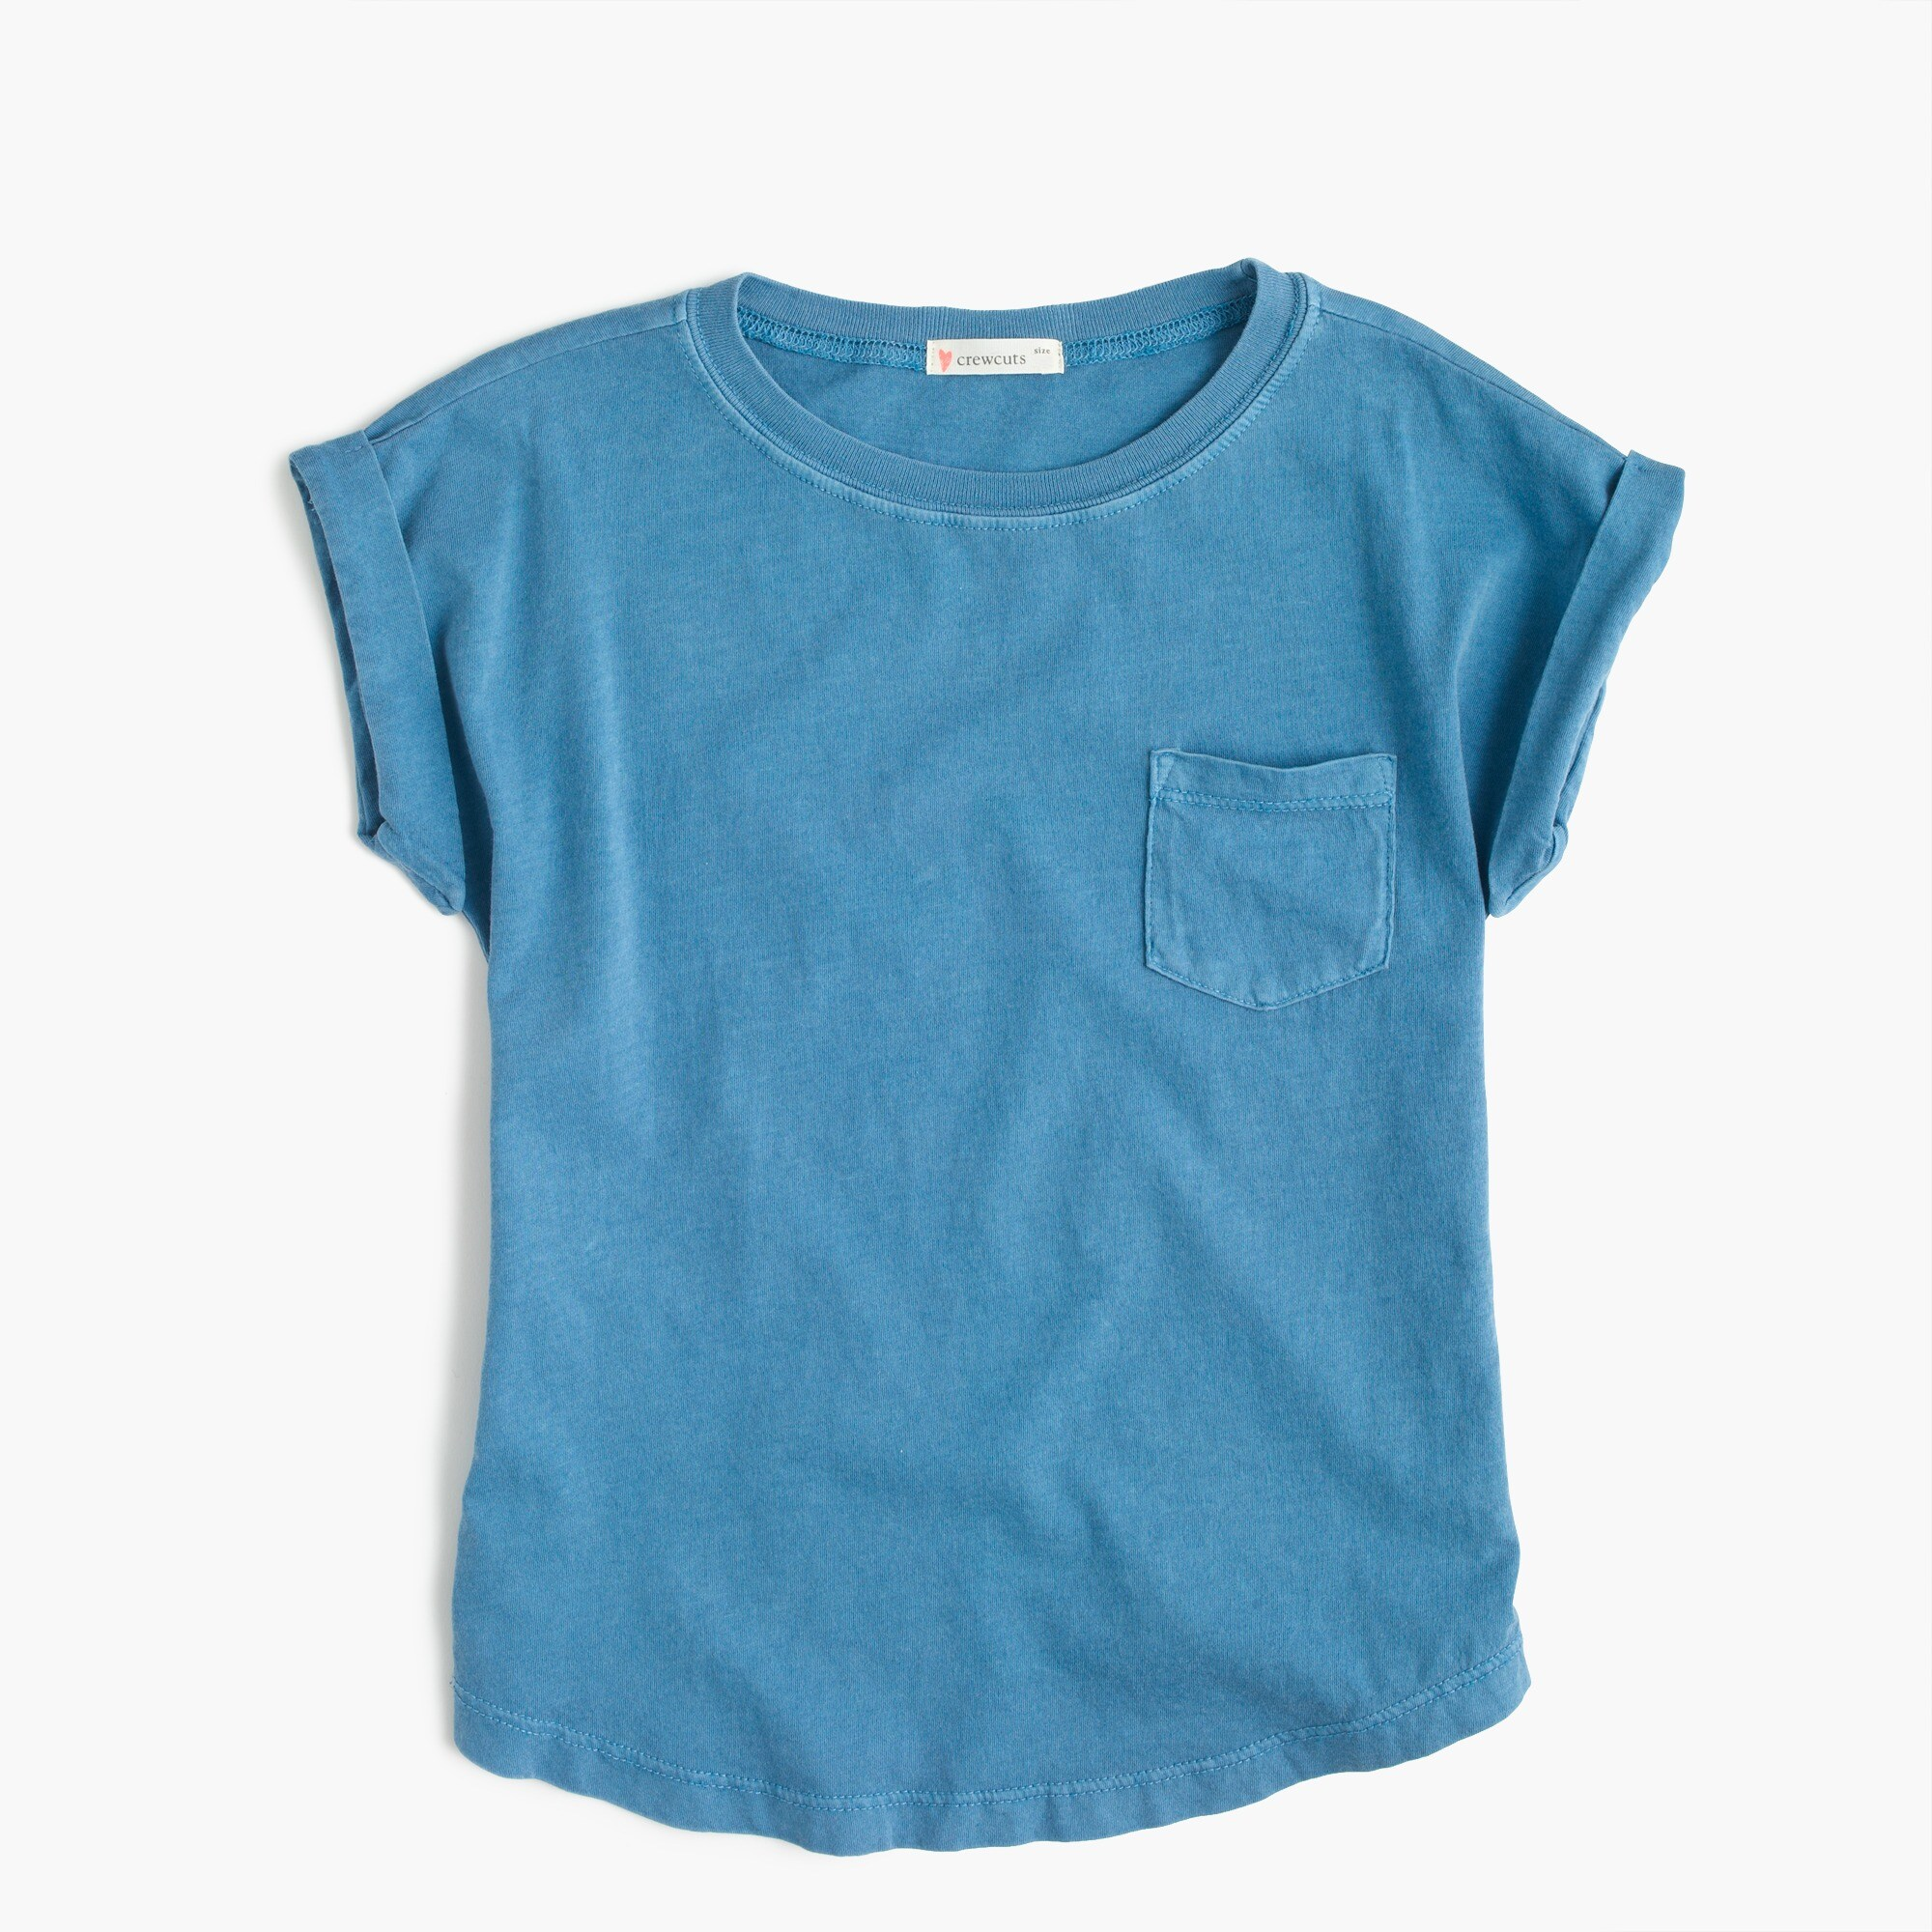 girls' garment-dyed t-shirt : girls' tees & tanks